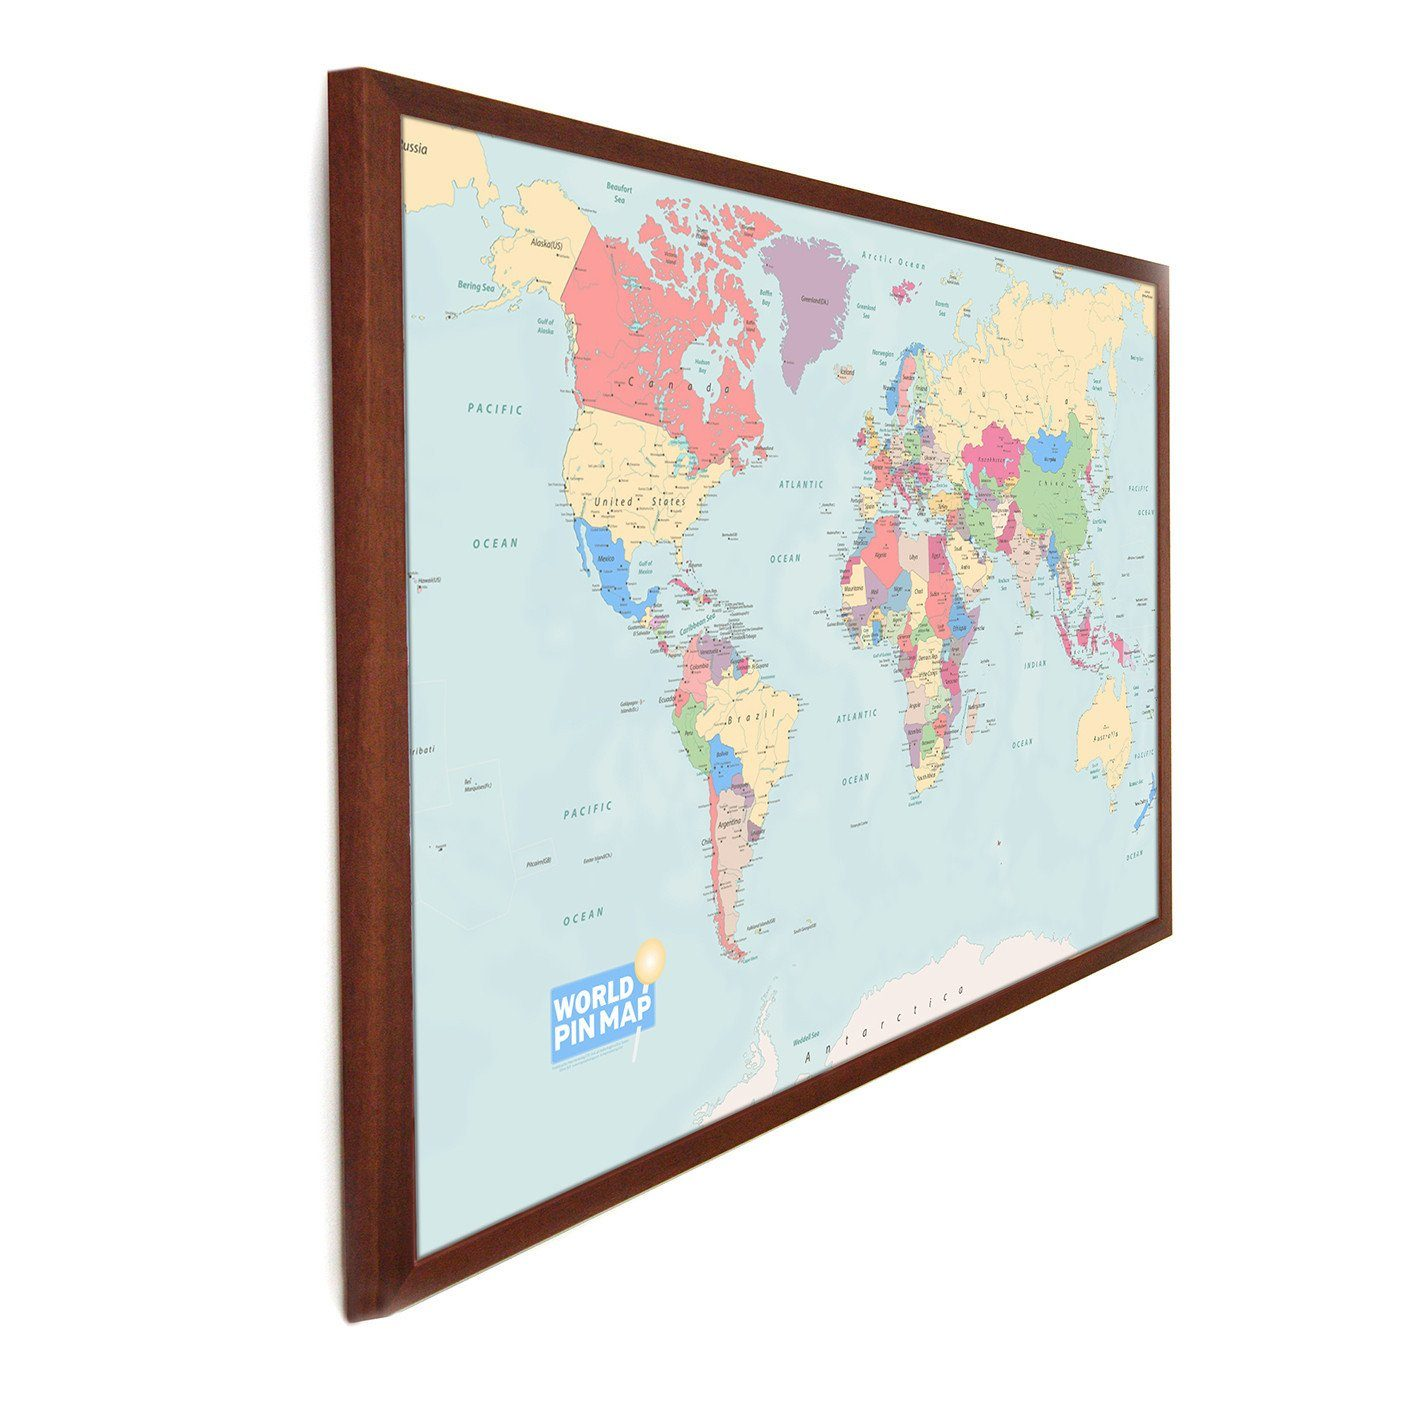 World pinboard map butler and hill map marketing map gift framed world pinboard map gumiabroncs Choice Image